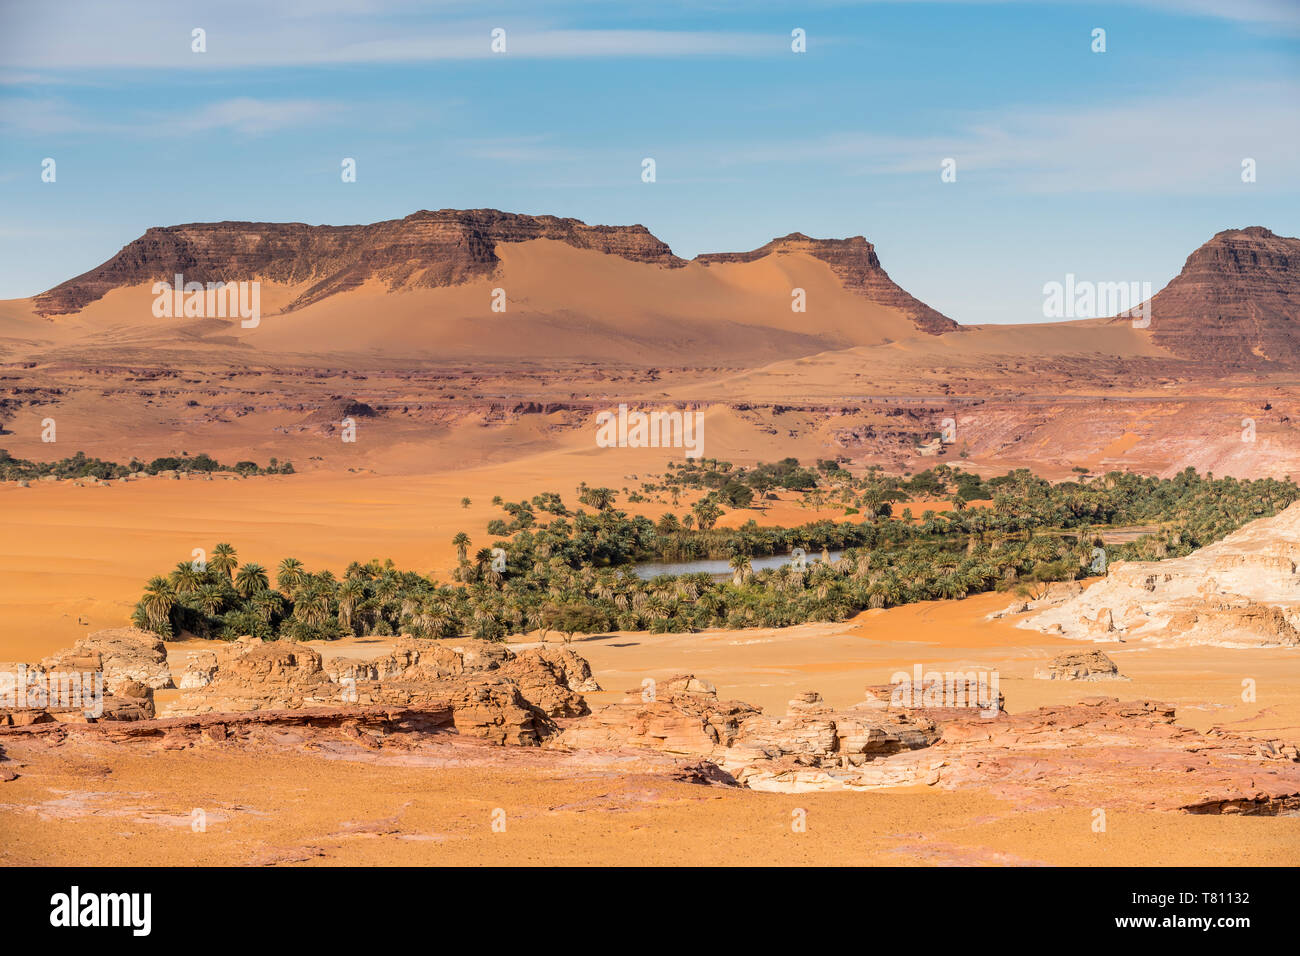 View over a salt water lake surrounded by the desert, Northern Chad, Africa - Stock Image